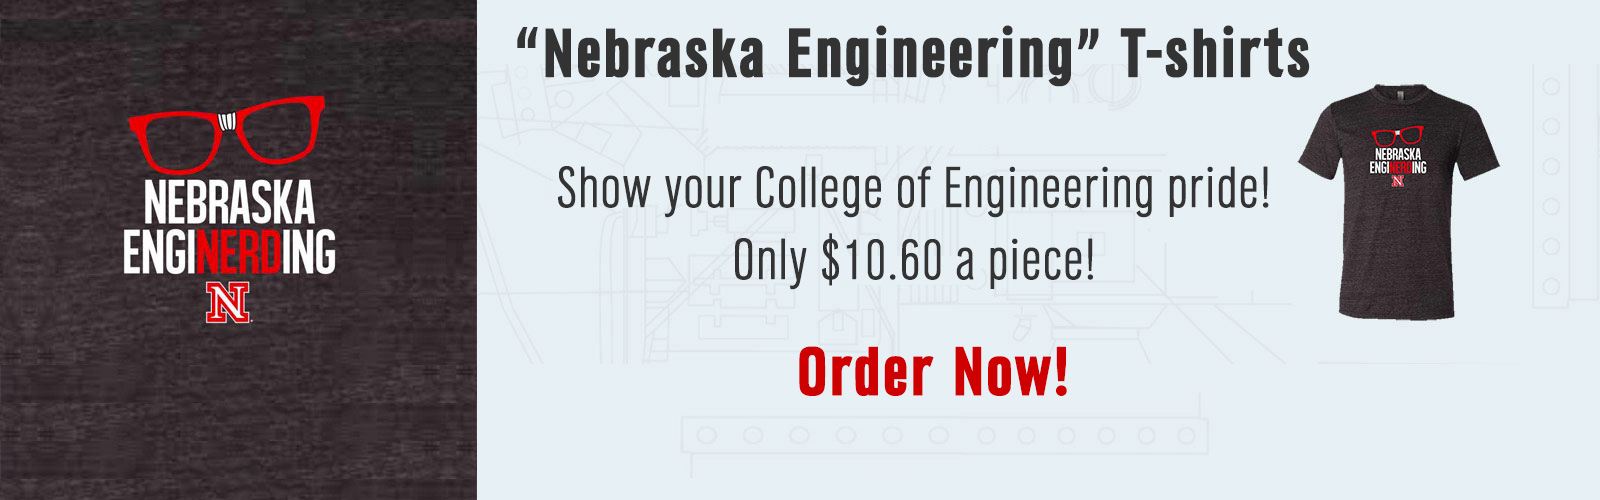 """Nebraska Enginerding"" T-shirts - Show your College of Engineering pride! Only $10.60 a piece. Order Now!"